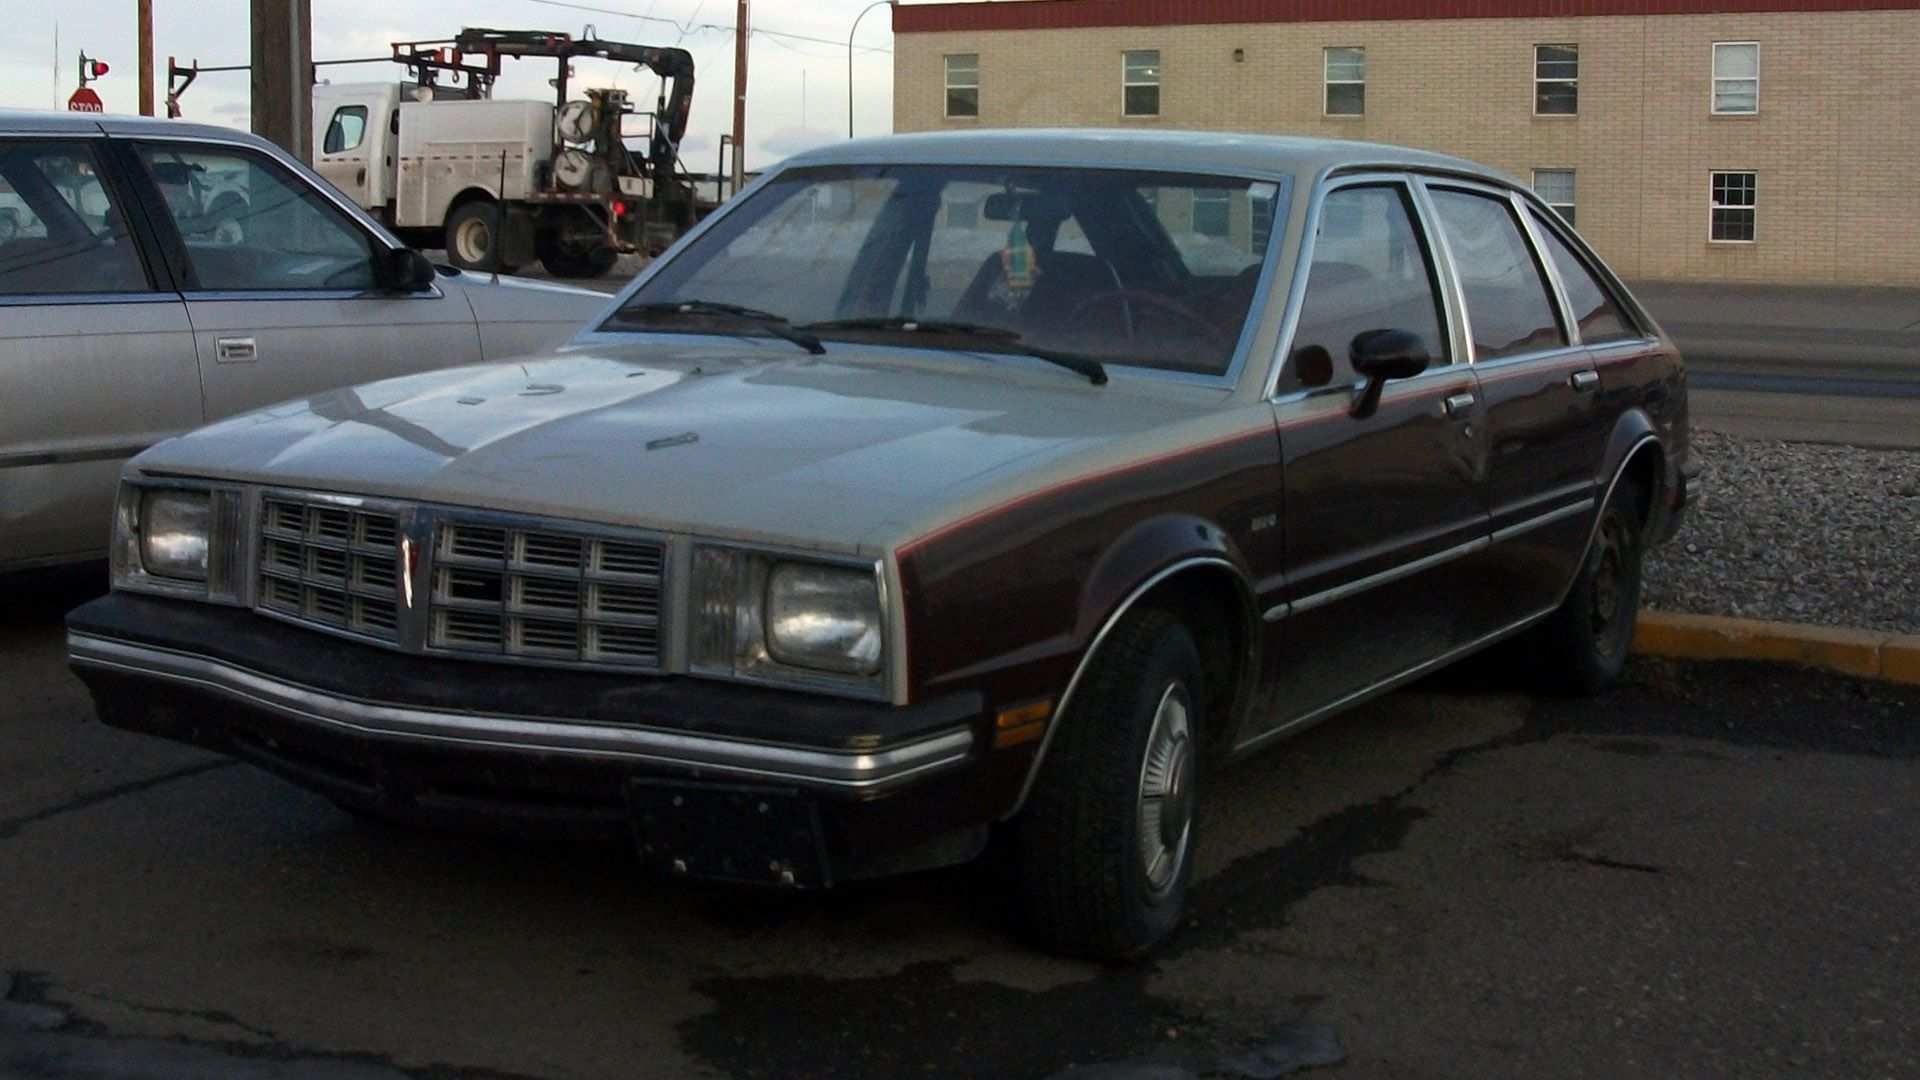 1980 El Camino Gas Mileage Can You Name These Ugly Cars From The 80s Howstuffworks